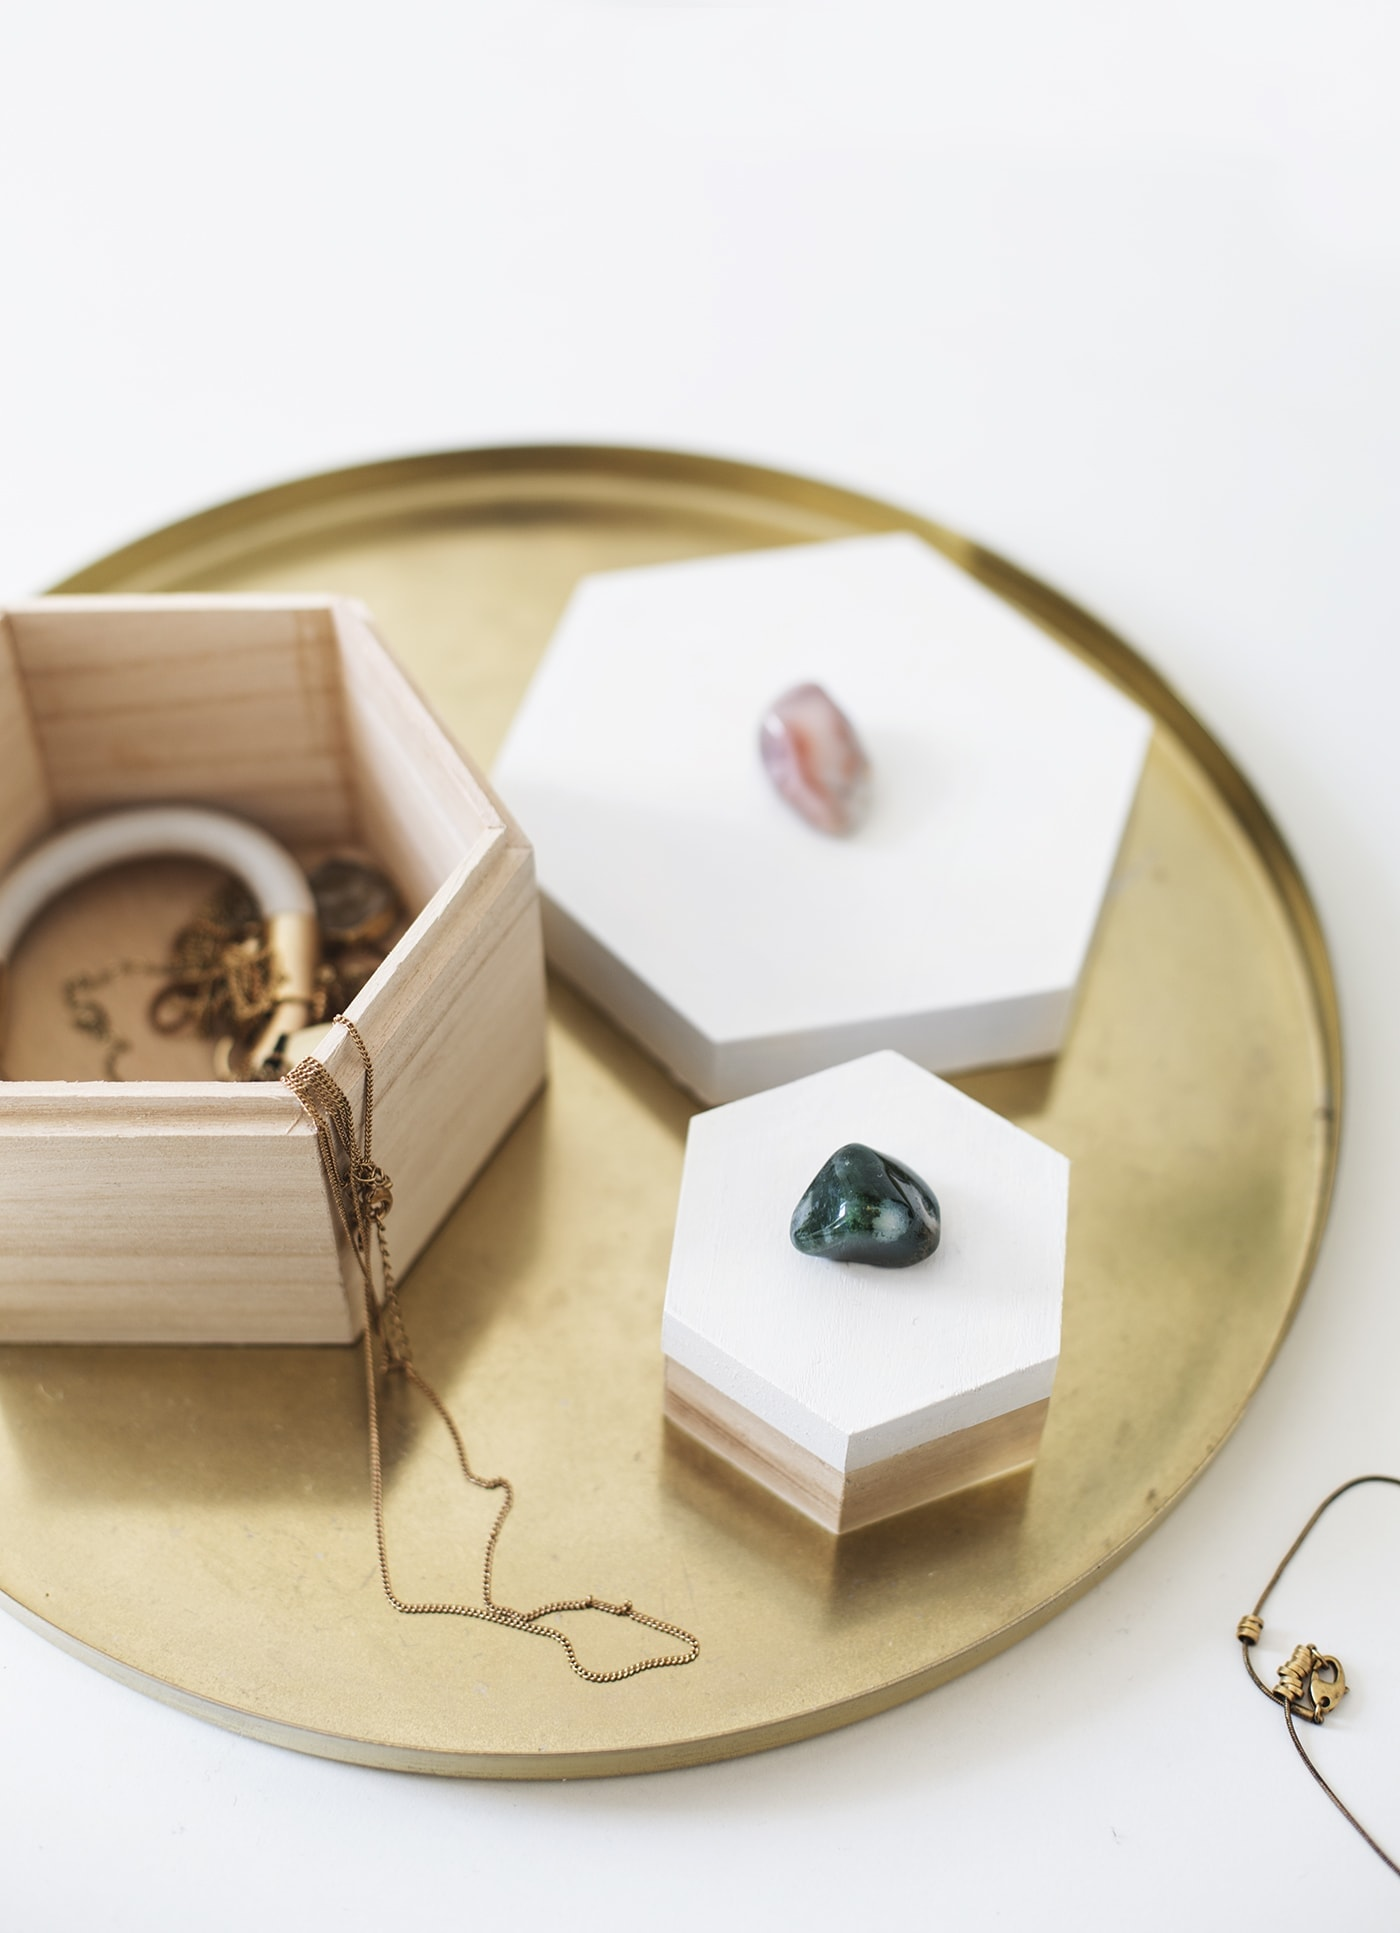 diy-gem-pull-box-storage-home-craft-tutorial